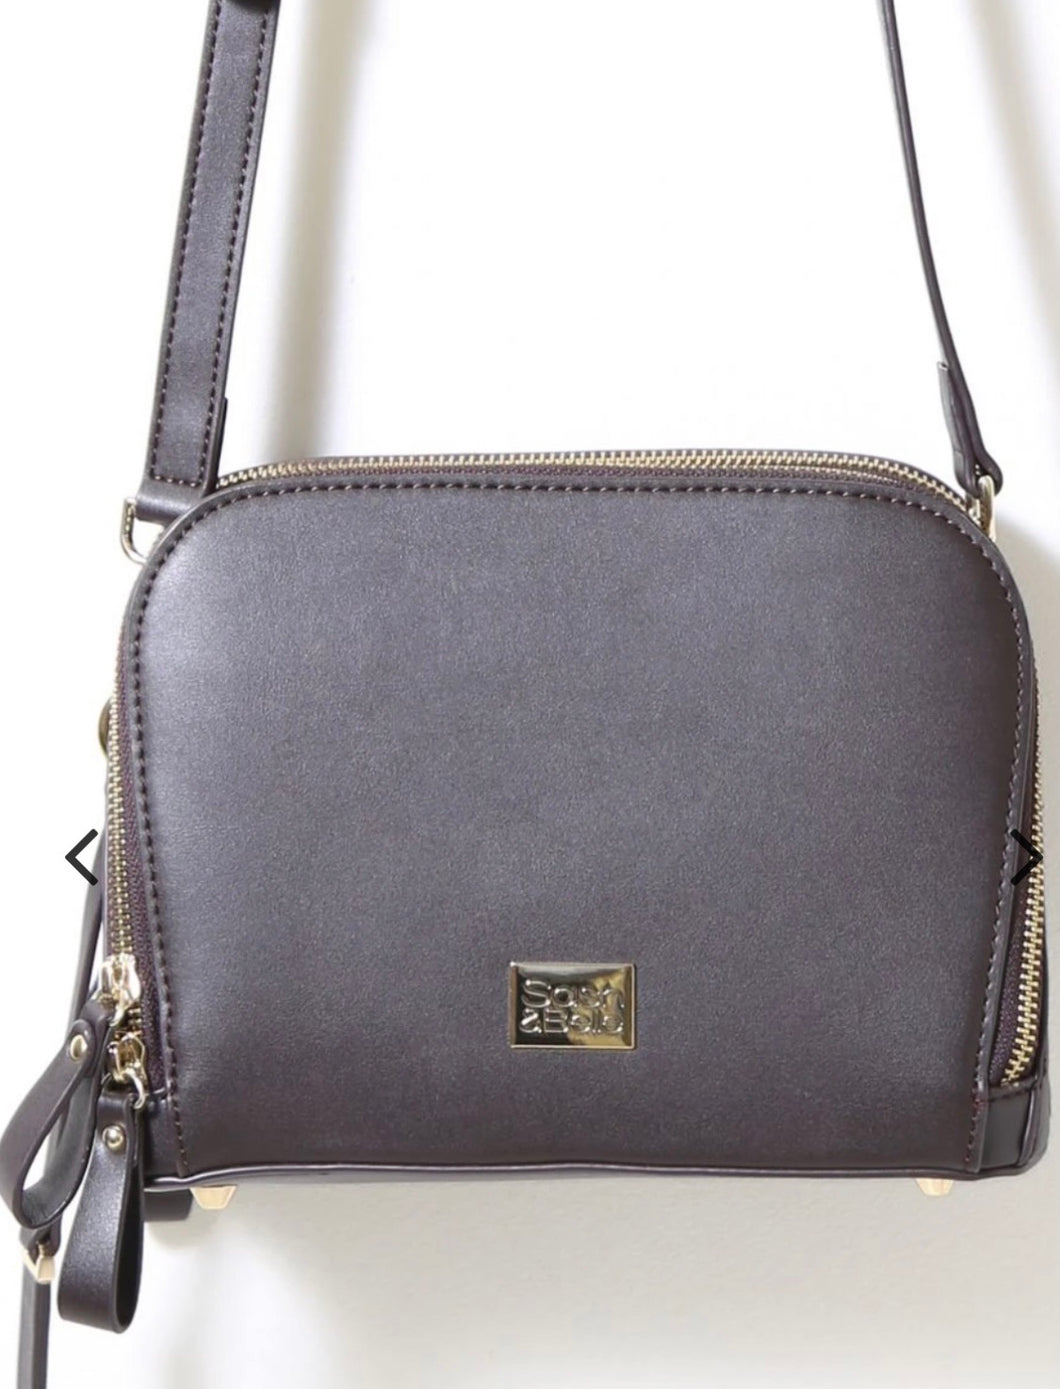 Eden Crossbody Bag by Sash & Belle